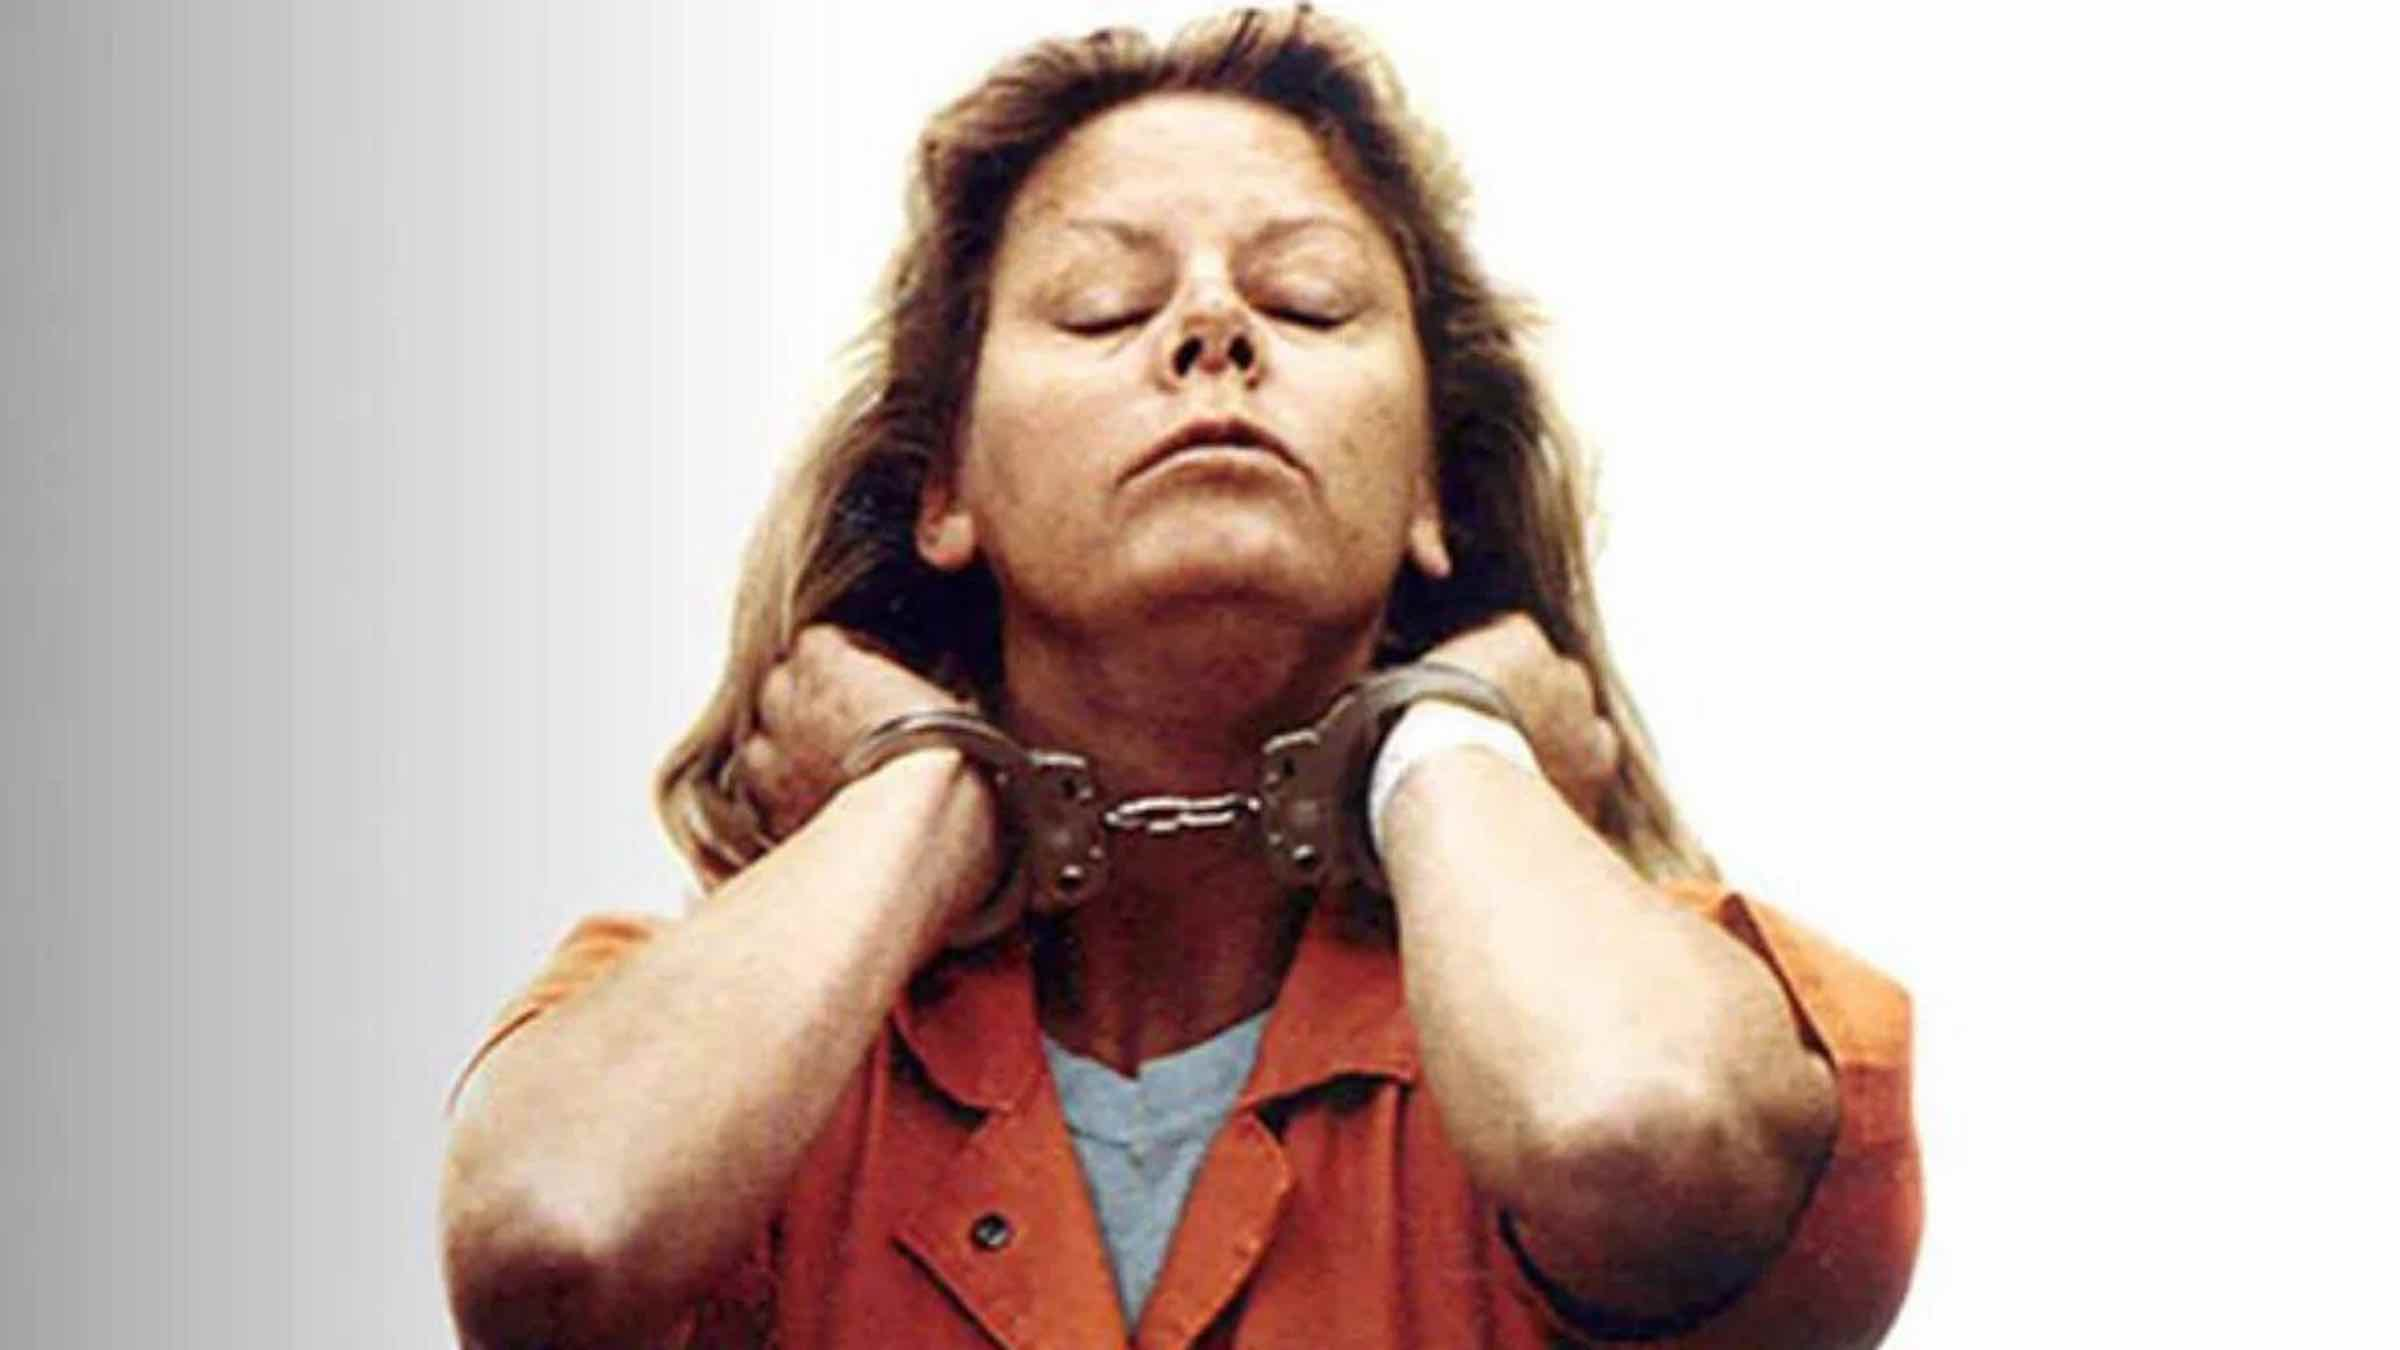 American serial killer: Here's why Aileen Wuornos was a 'Monster' – Film  Daily